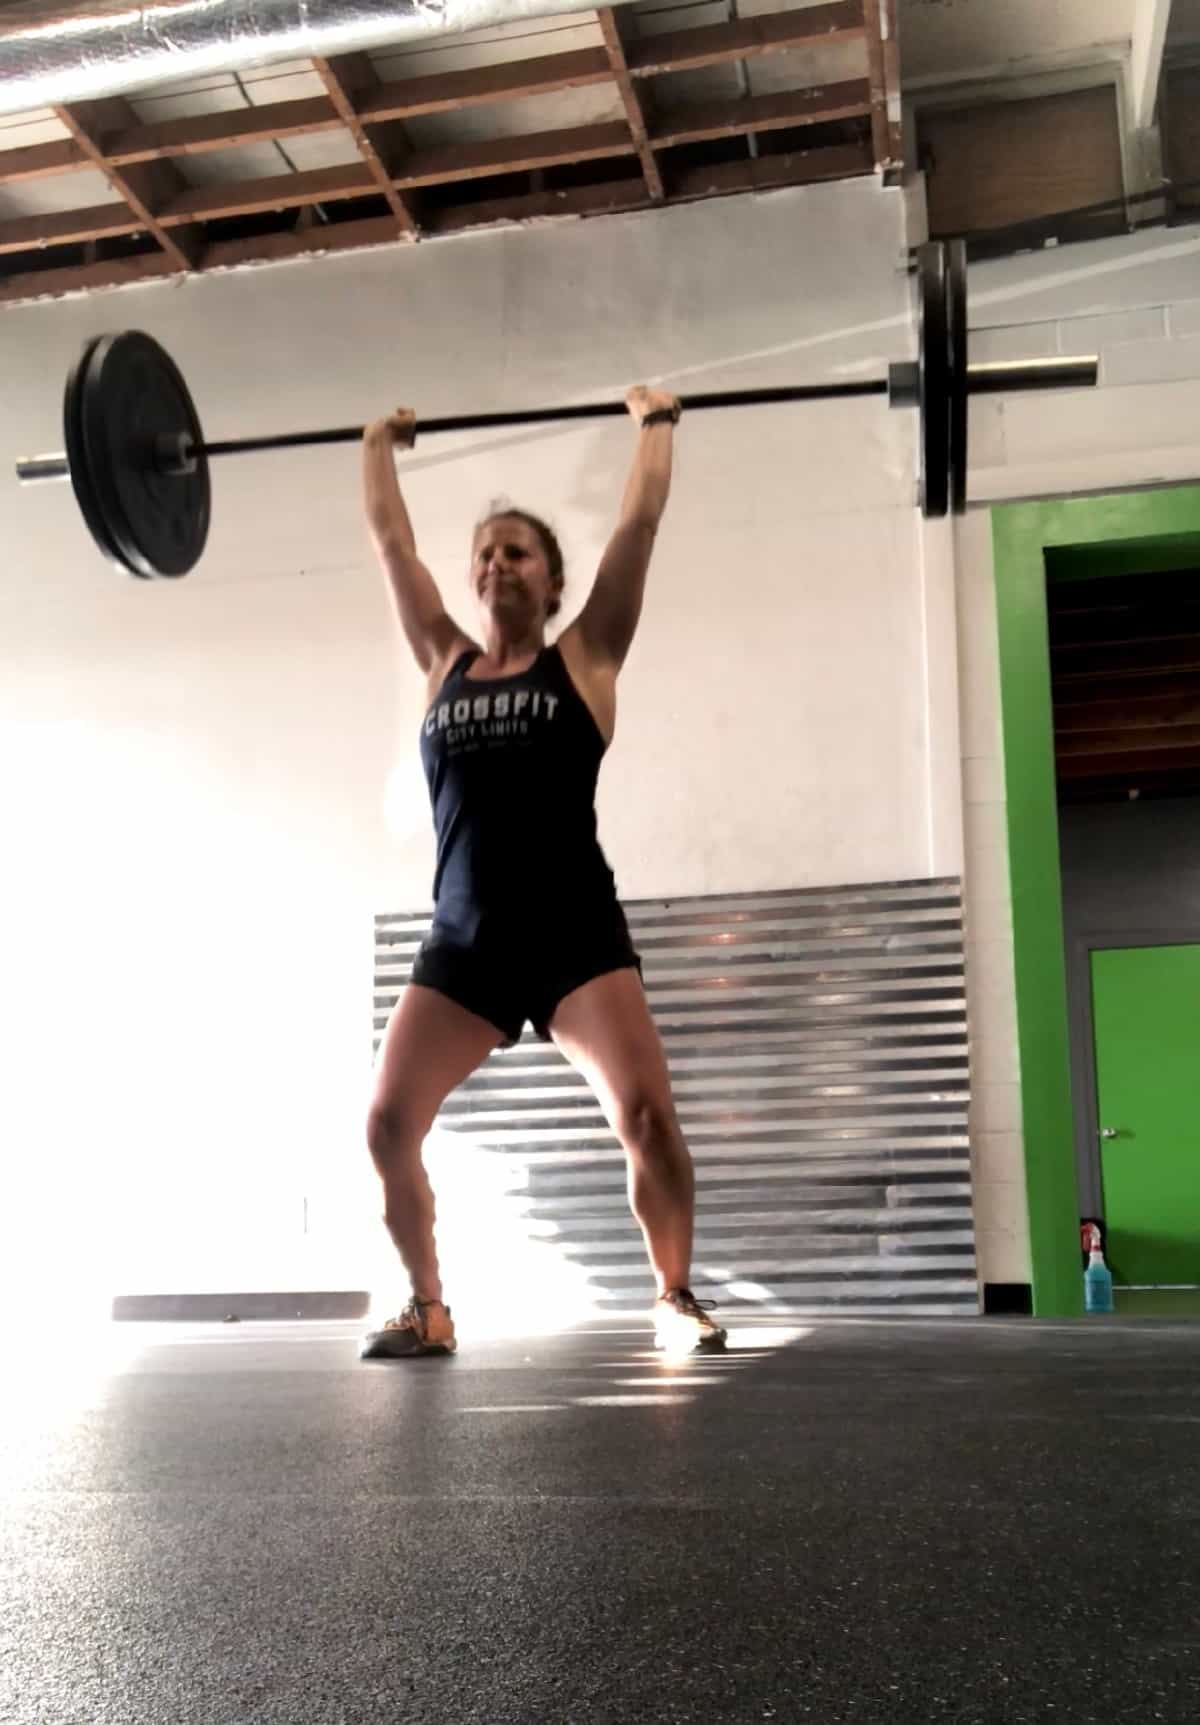 Girl doing a push jerk with the barbell over her head